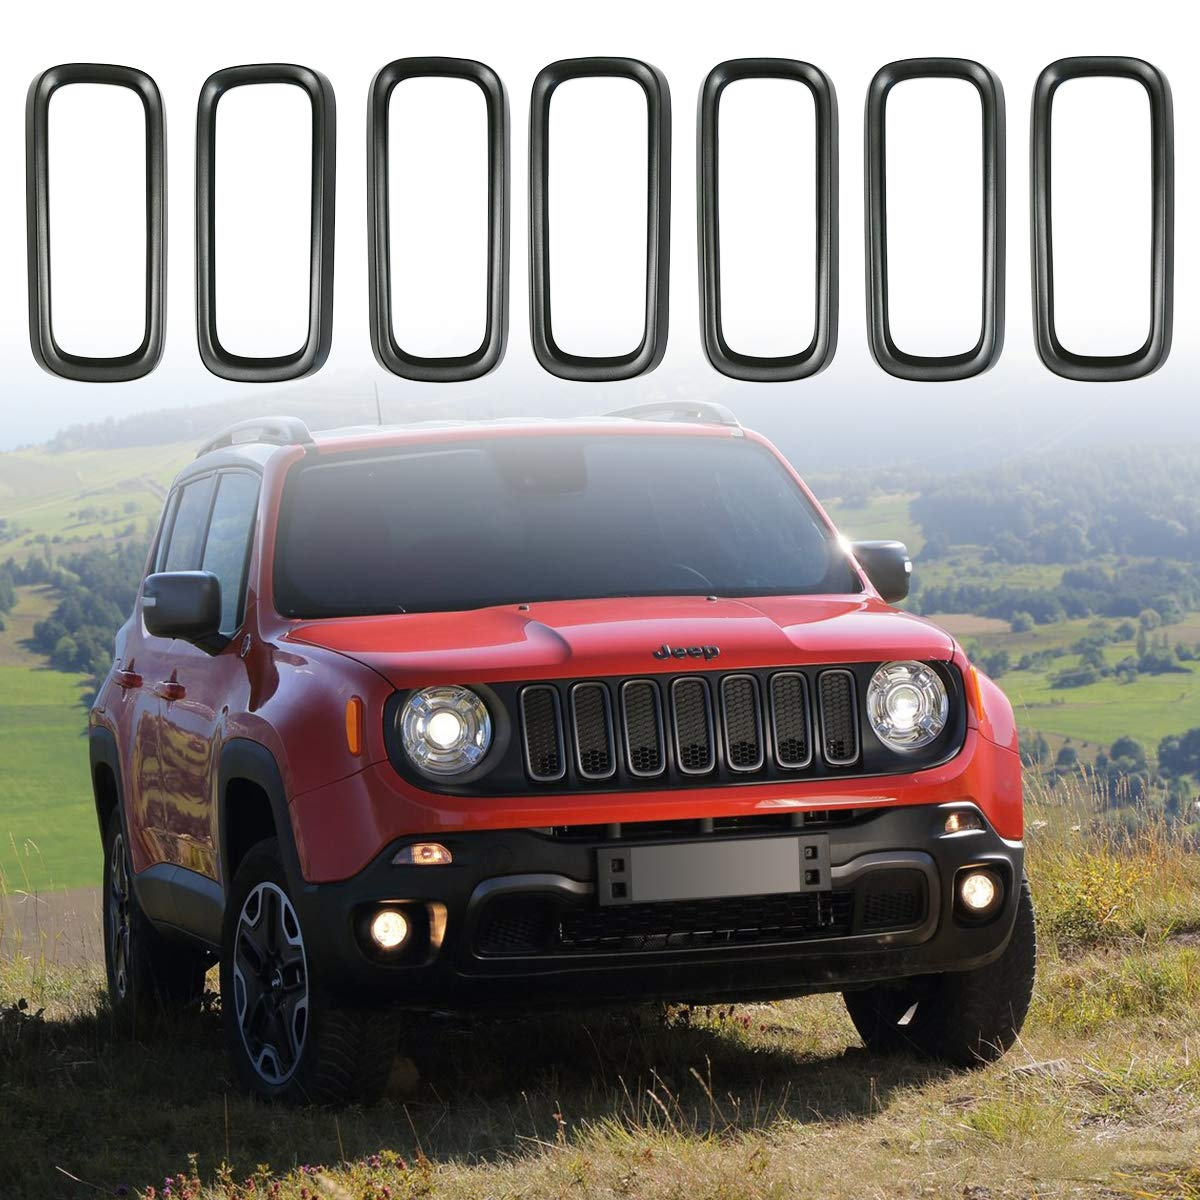 XBEEK 7PCS Front Grille Insert Ring Direct Replacement Grill Cover Trim for Jeep Renegade 2015 2016 2017 2018 (Dark Gray)